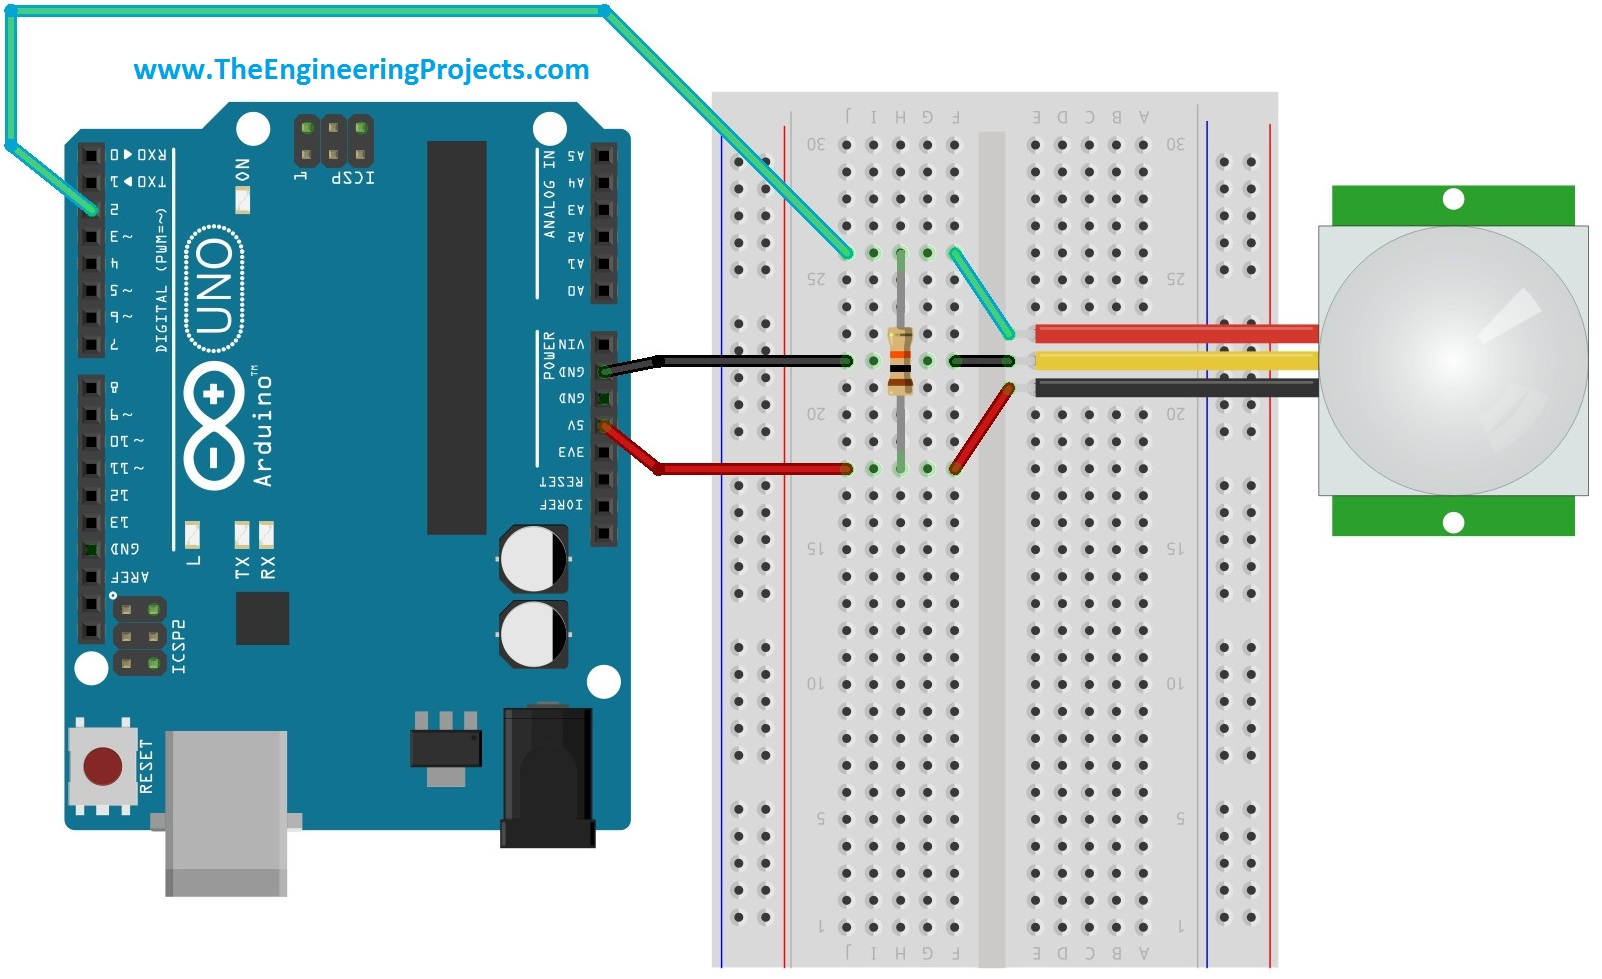 Pir Sensor Led Circuit Wiring Diagram Master Blogs Ldr Hookup Interfacing With Arduino The Engineering Projects Motion